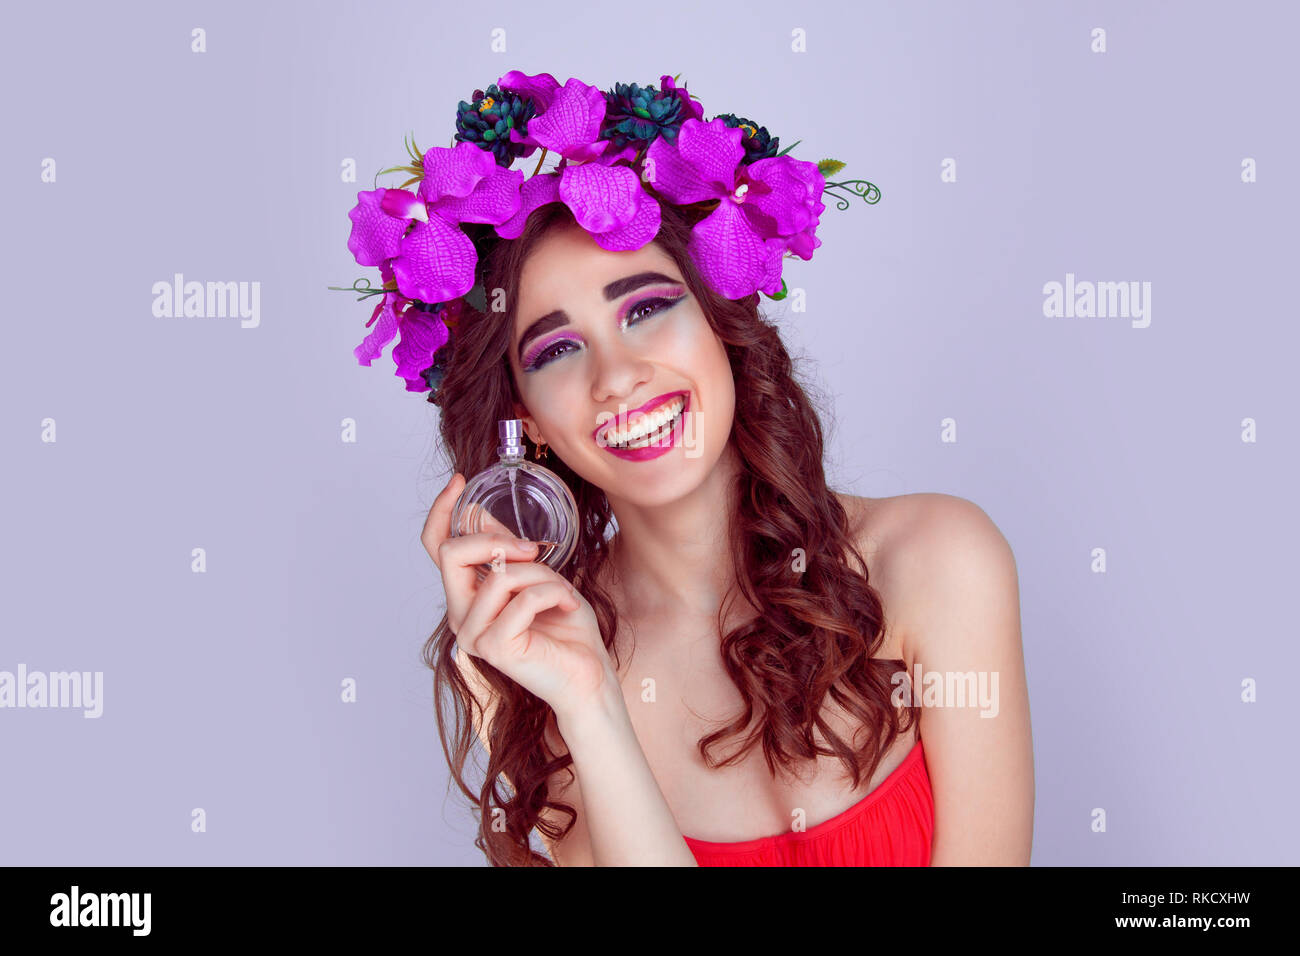 woman with floral crown holding perfume bottle laughing - Stock Image